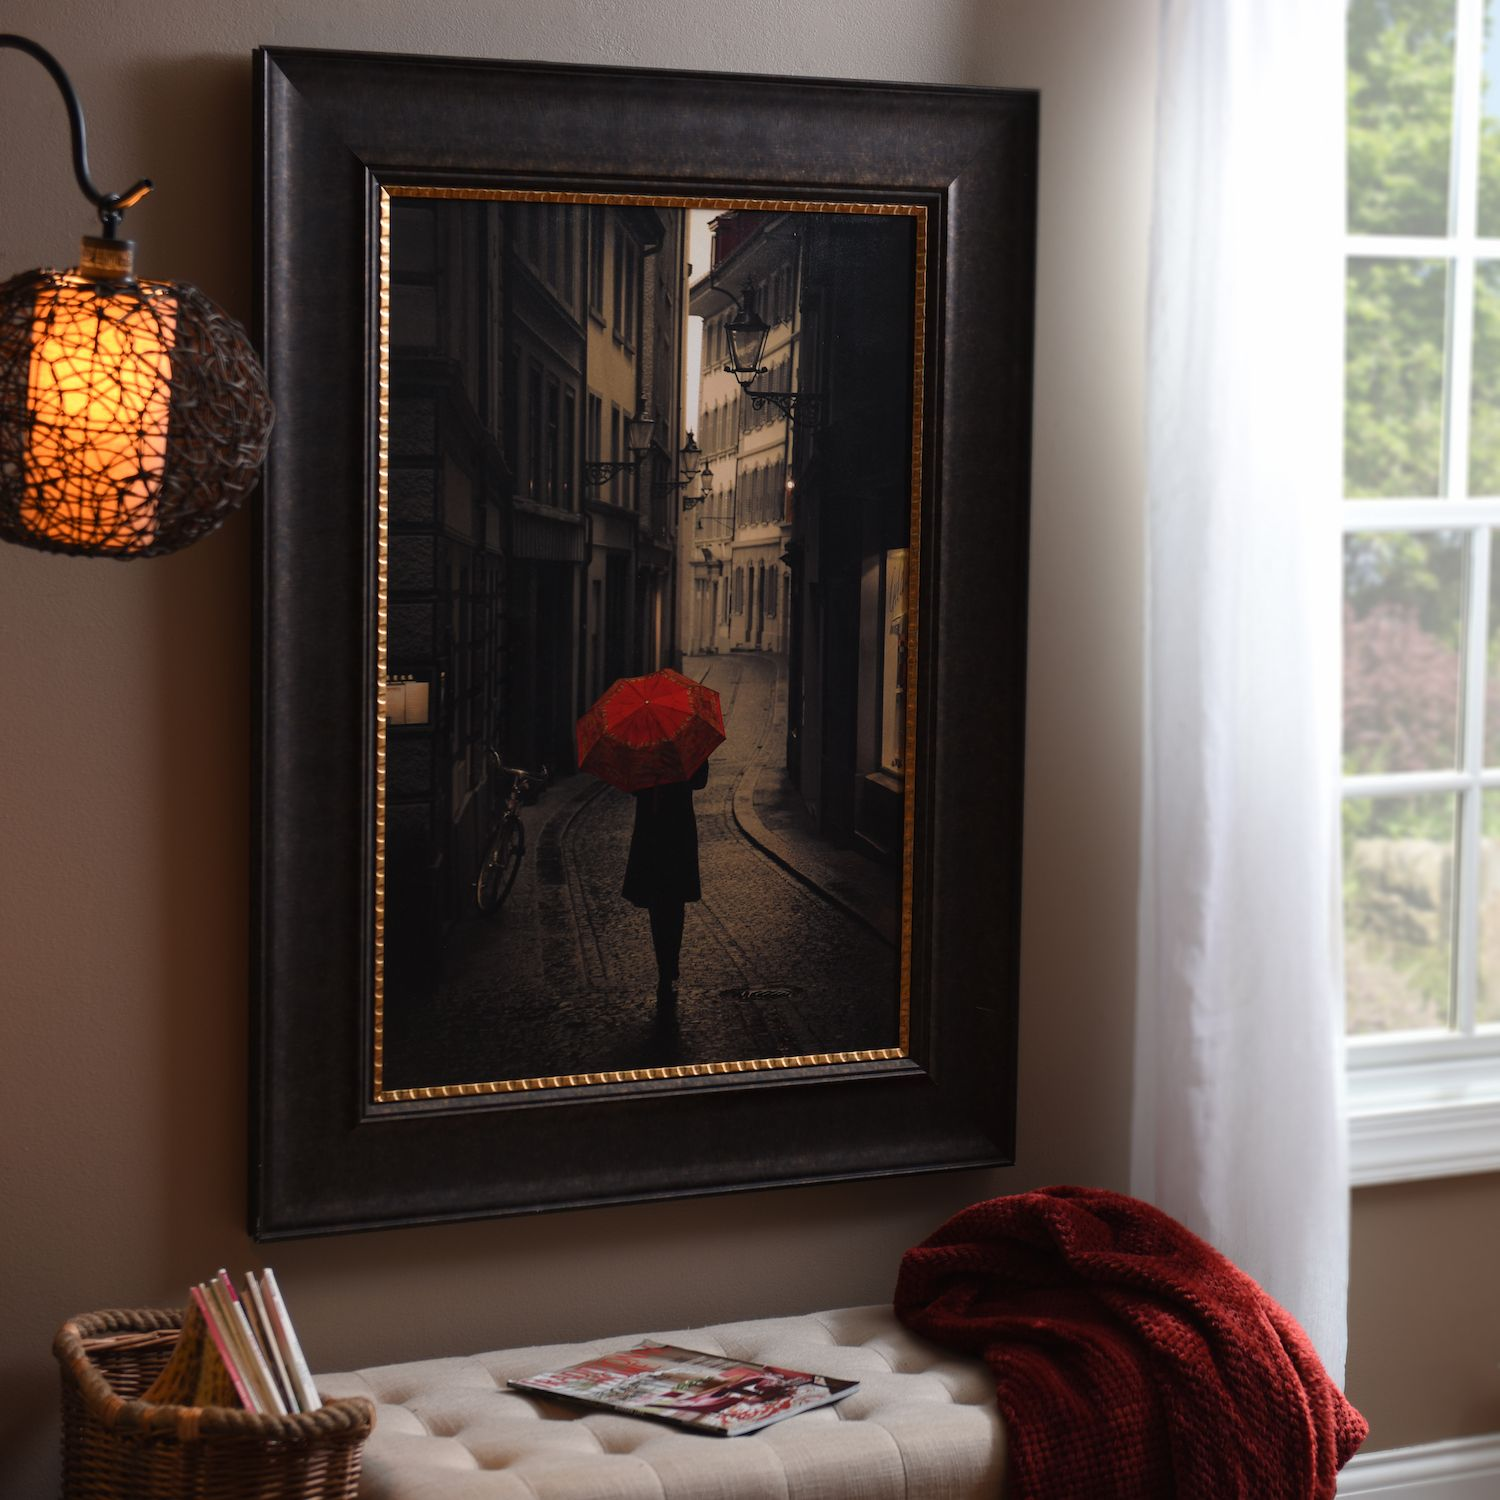 Home interiors and gifts framed art - Home Interiors And Gifts Framed Art